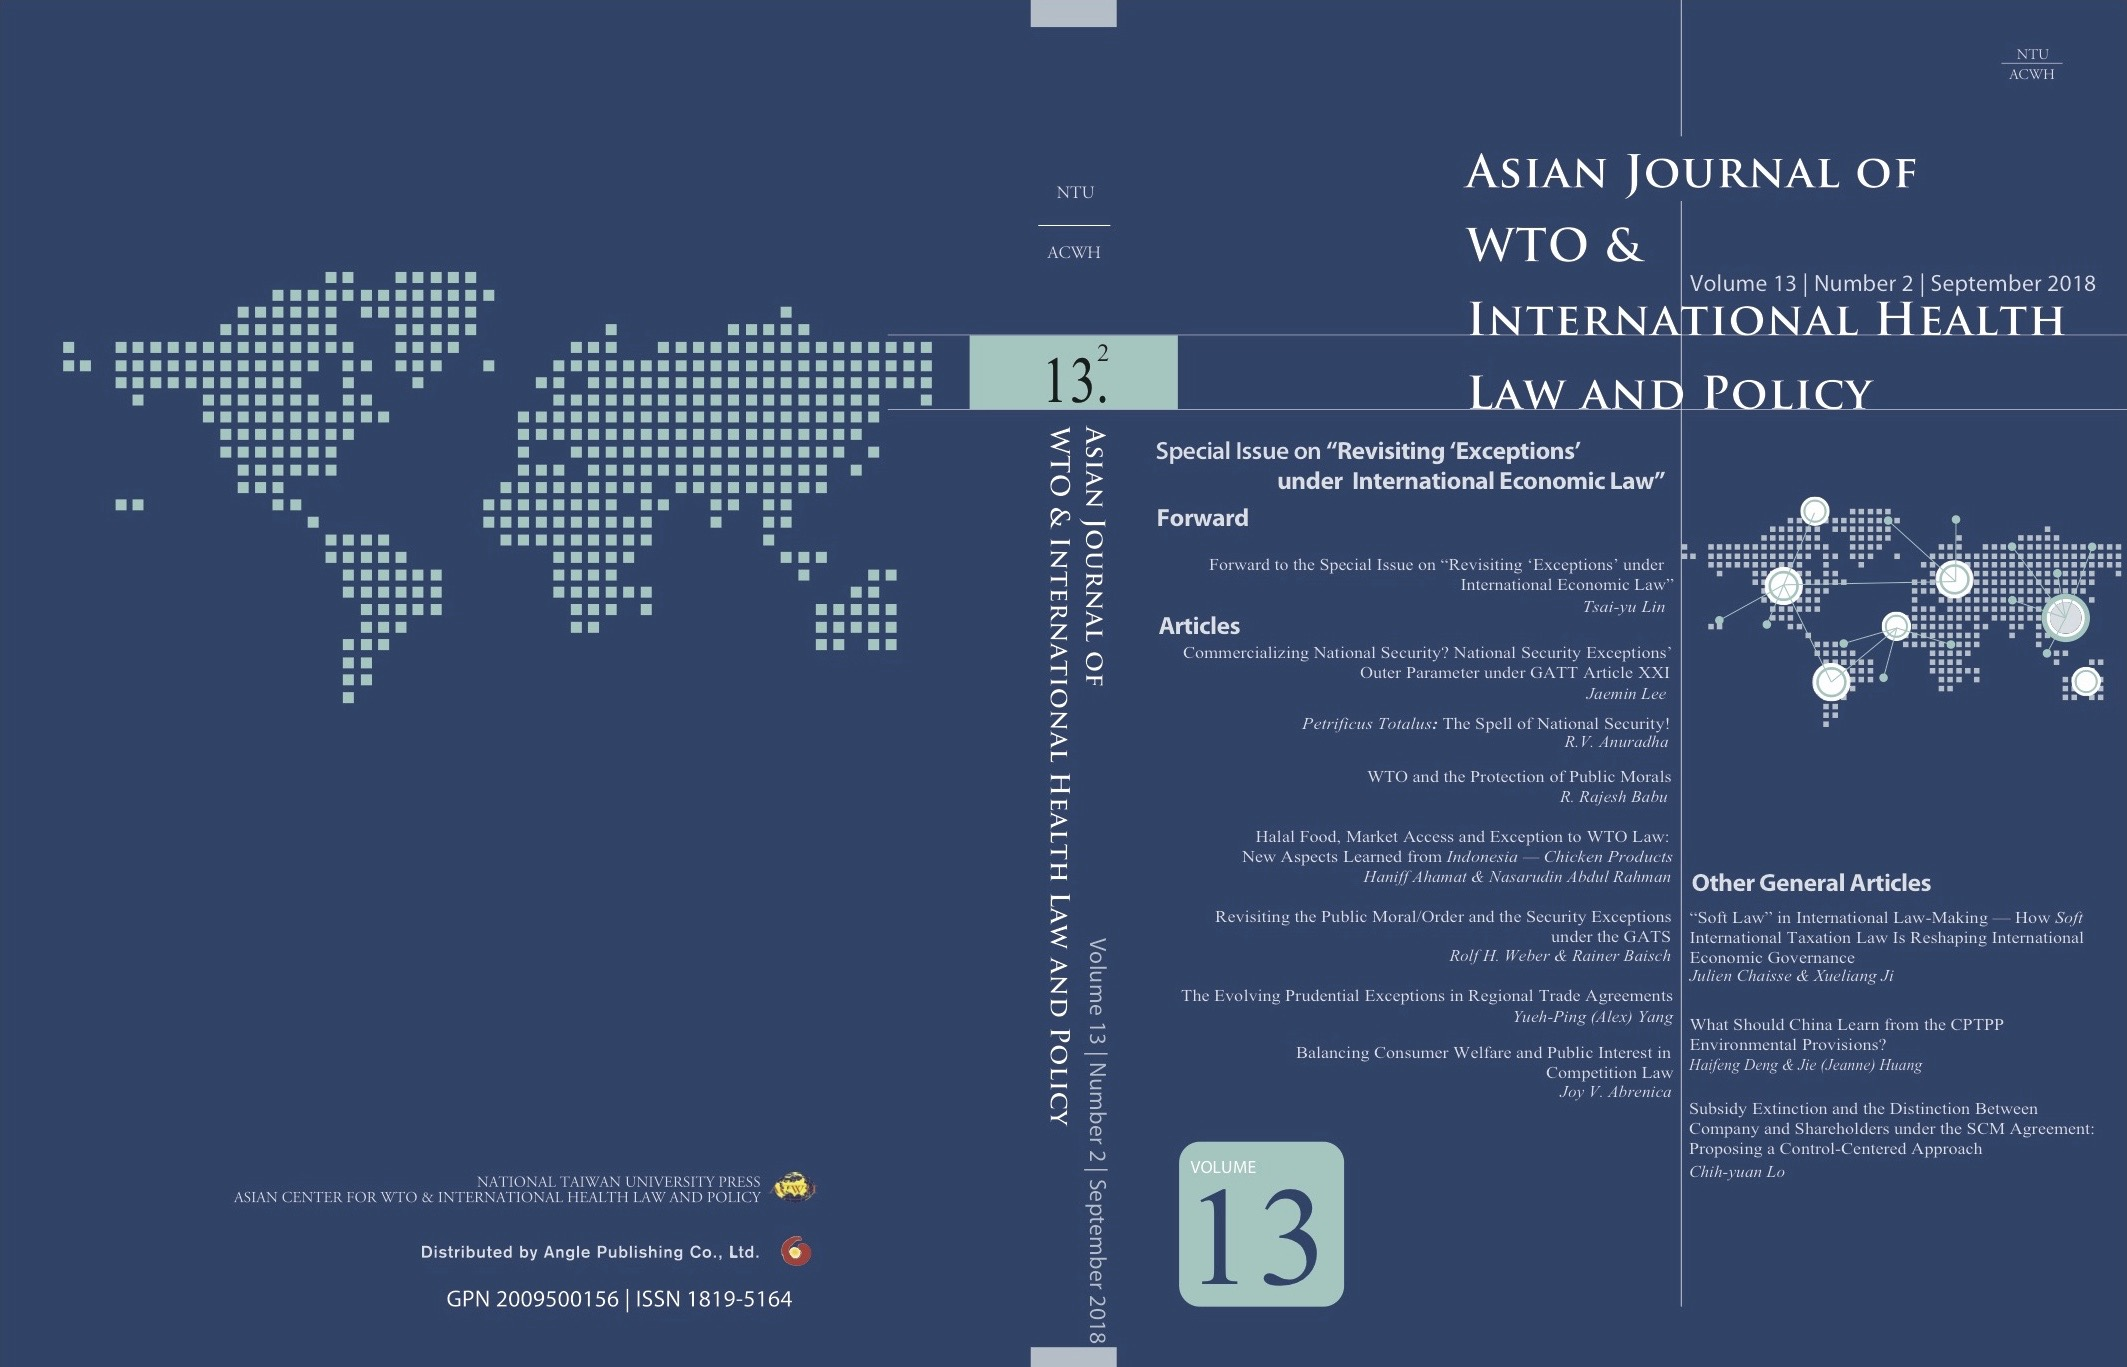 Acwh Asian Center For Wto International Health Law And P Publication